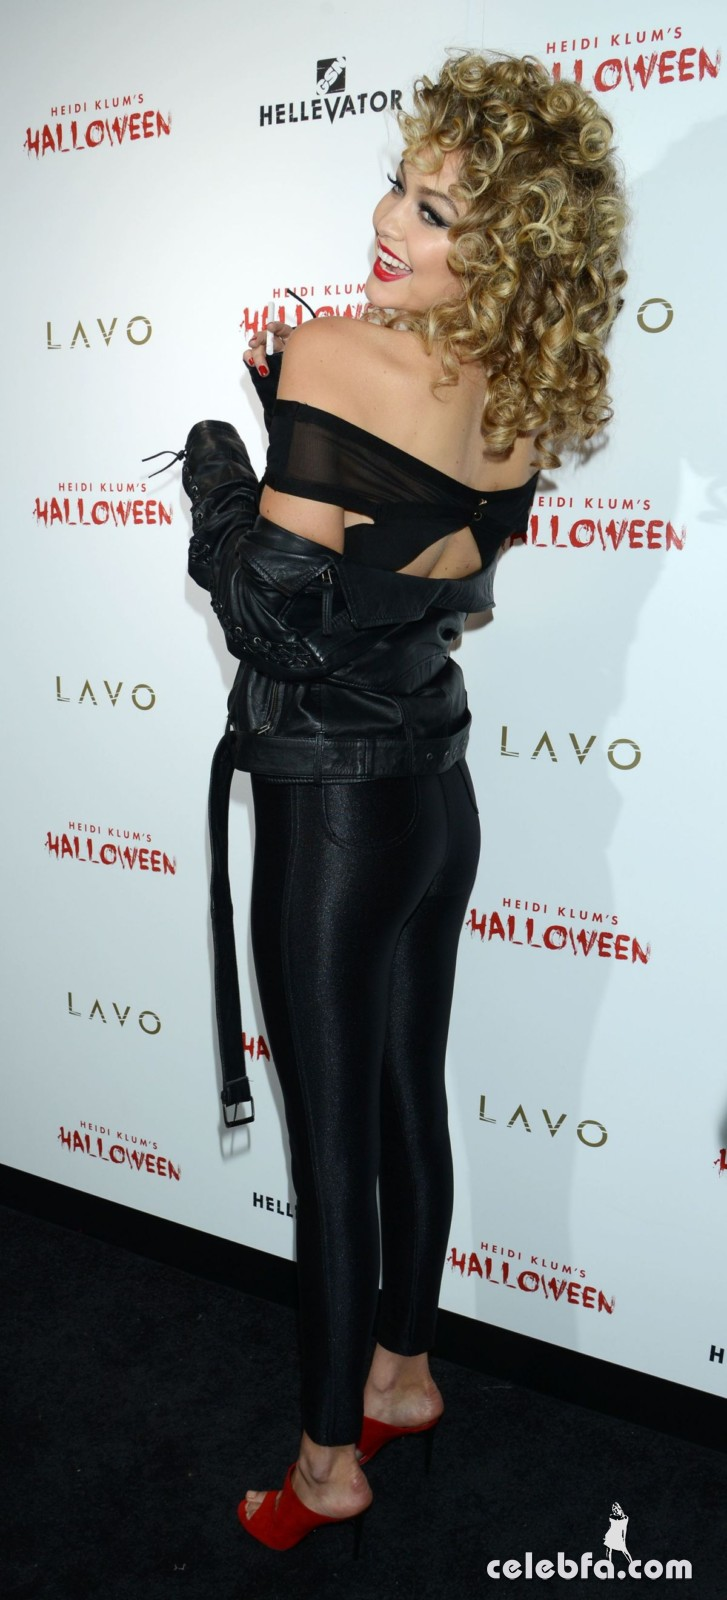 gigi-hadid-at-heidi-klum-halloween-party-in-new-york (7)